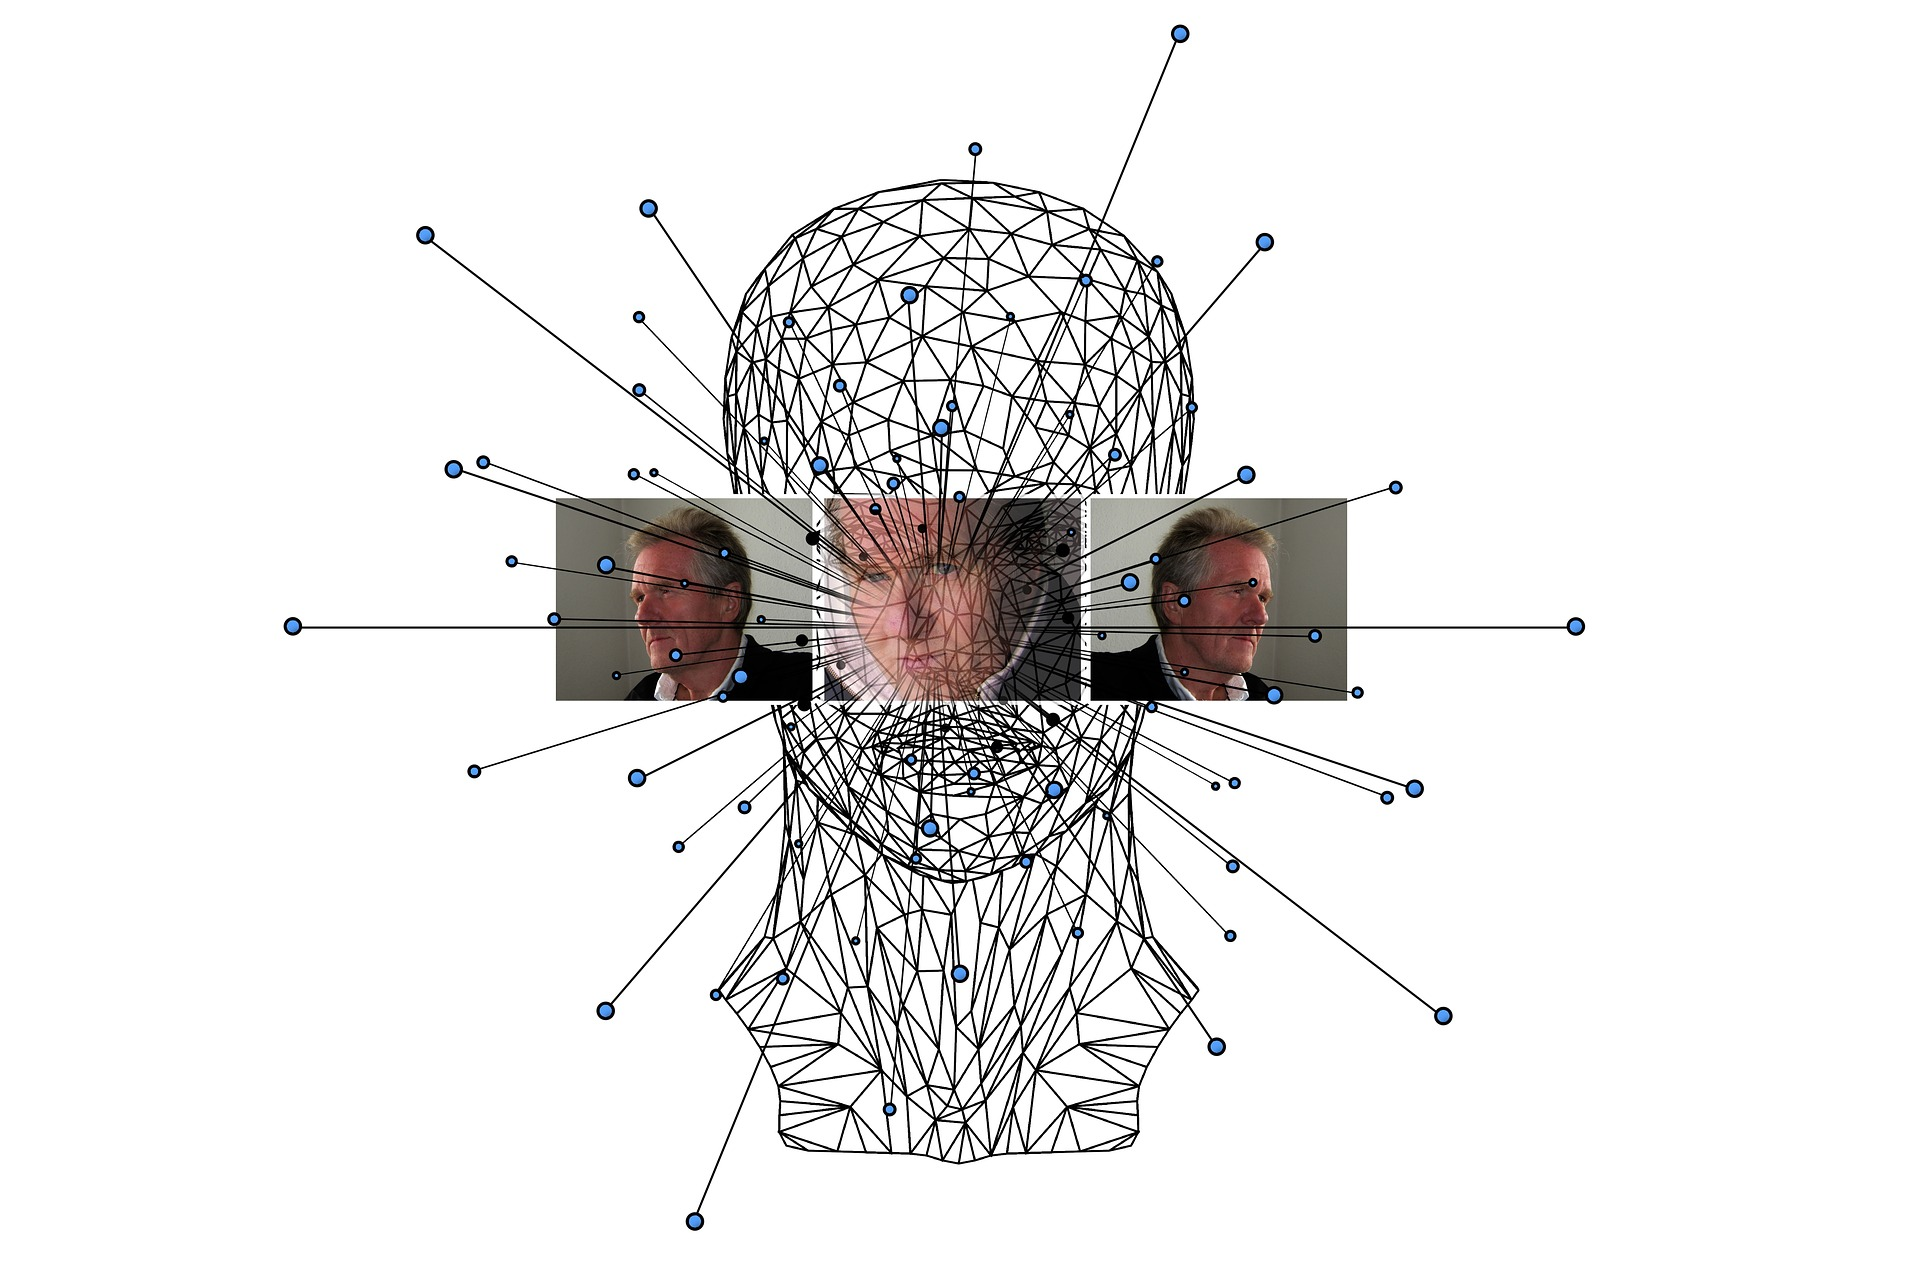 wireframe head with faces superimposed